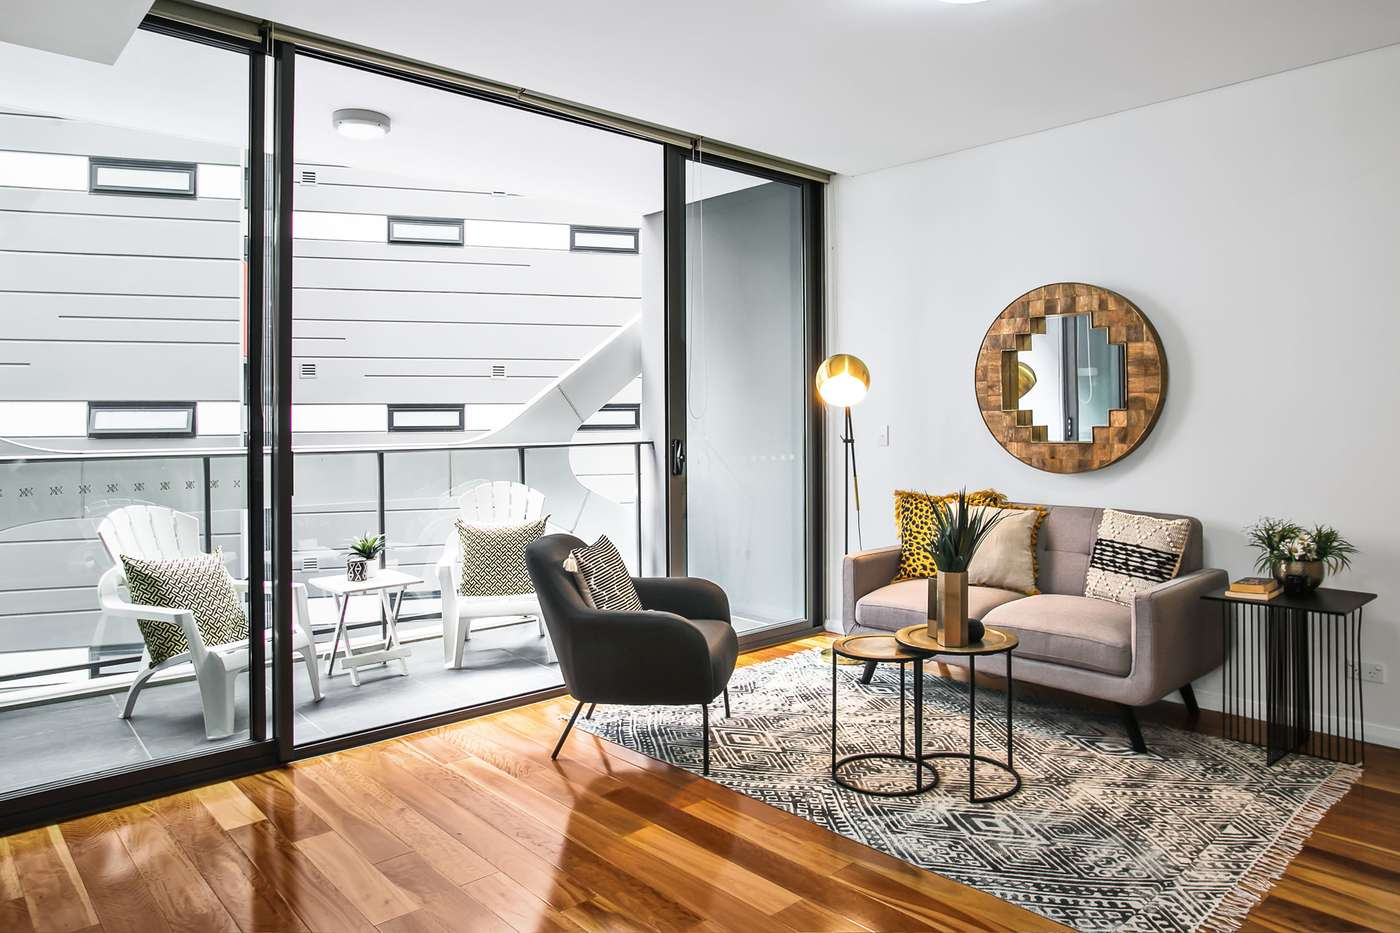 Main view of Homely apartment listing, 208/20 McGill Street, Lewisham, NSW 2049